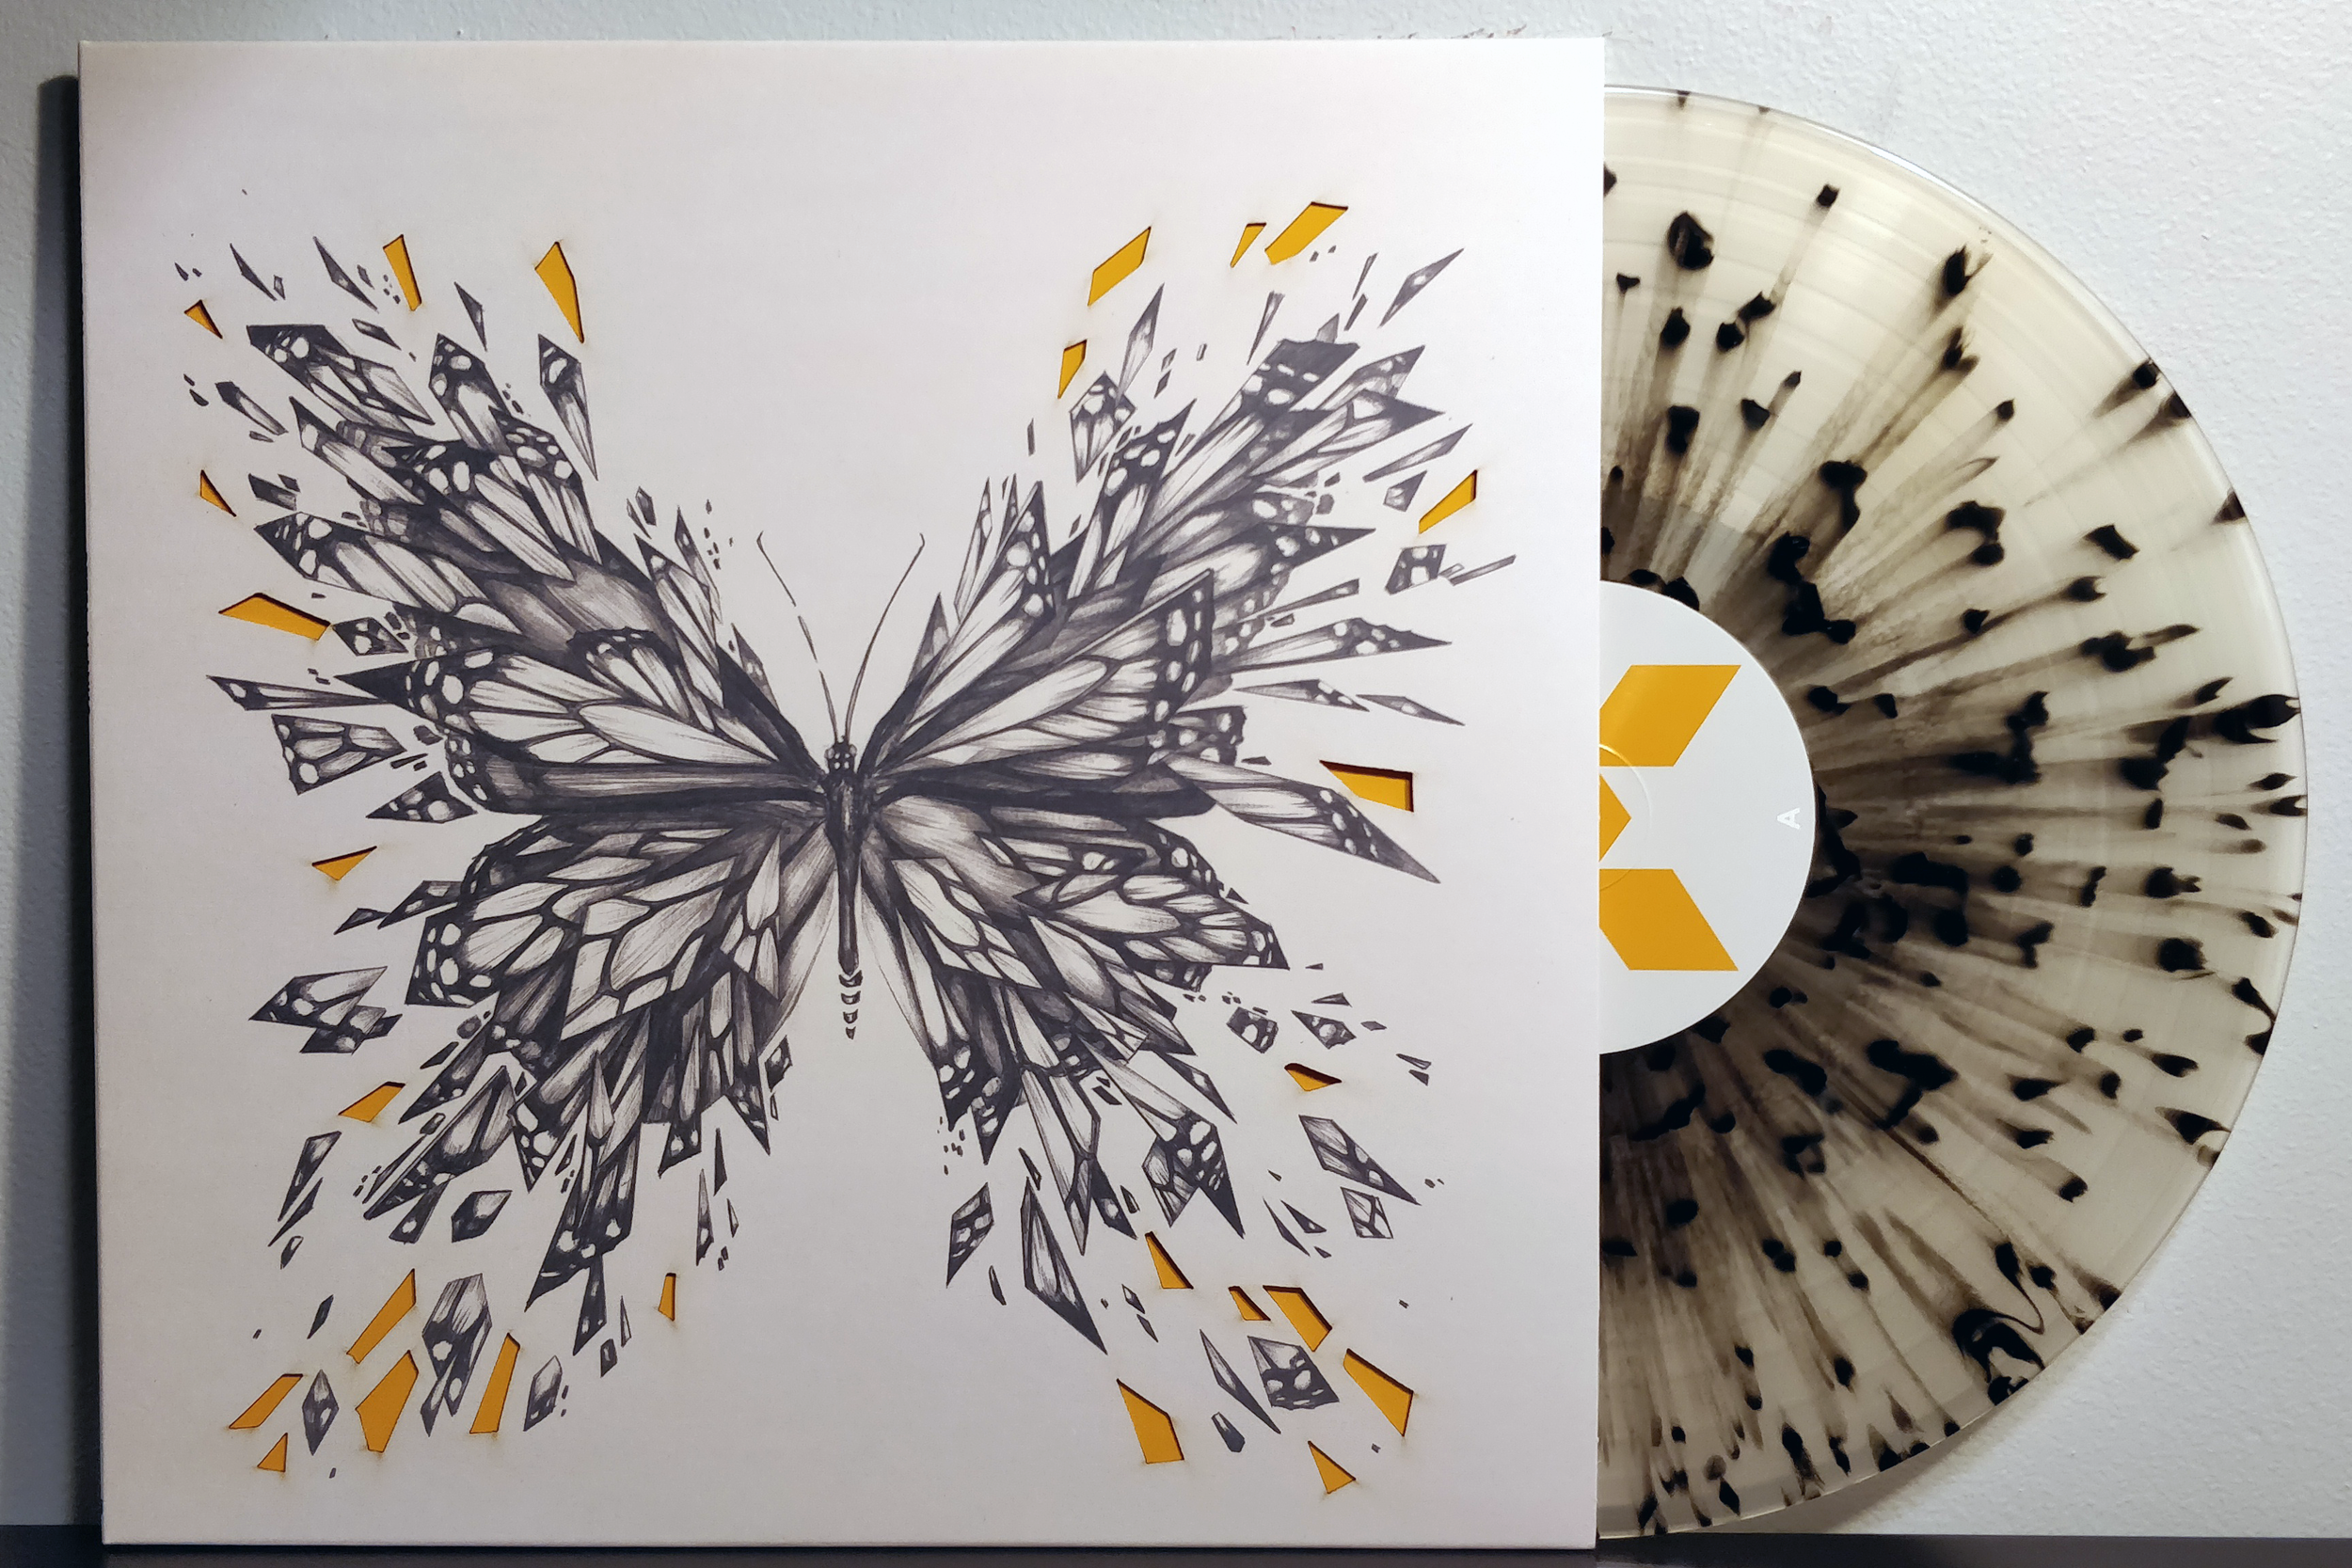 Quantum Break by Petri Alanko pressed on clear with black splatter vinyl by iam8bit